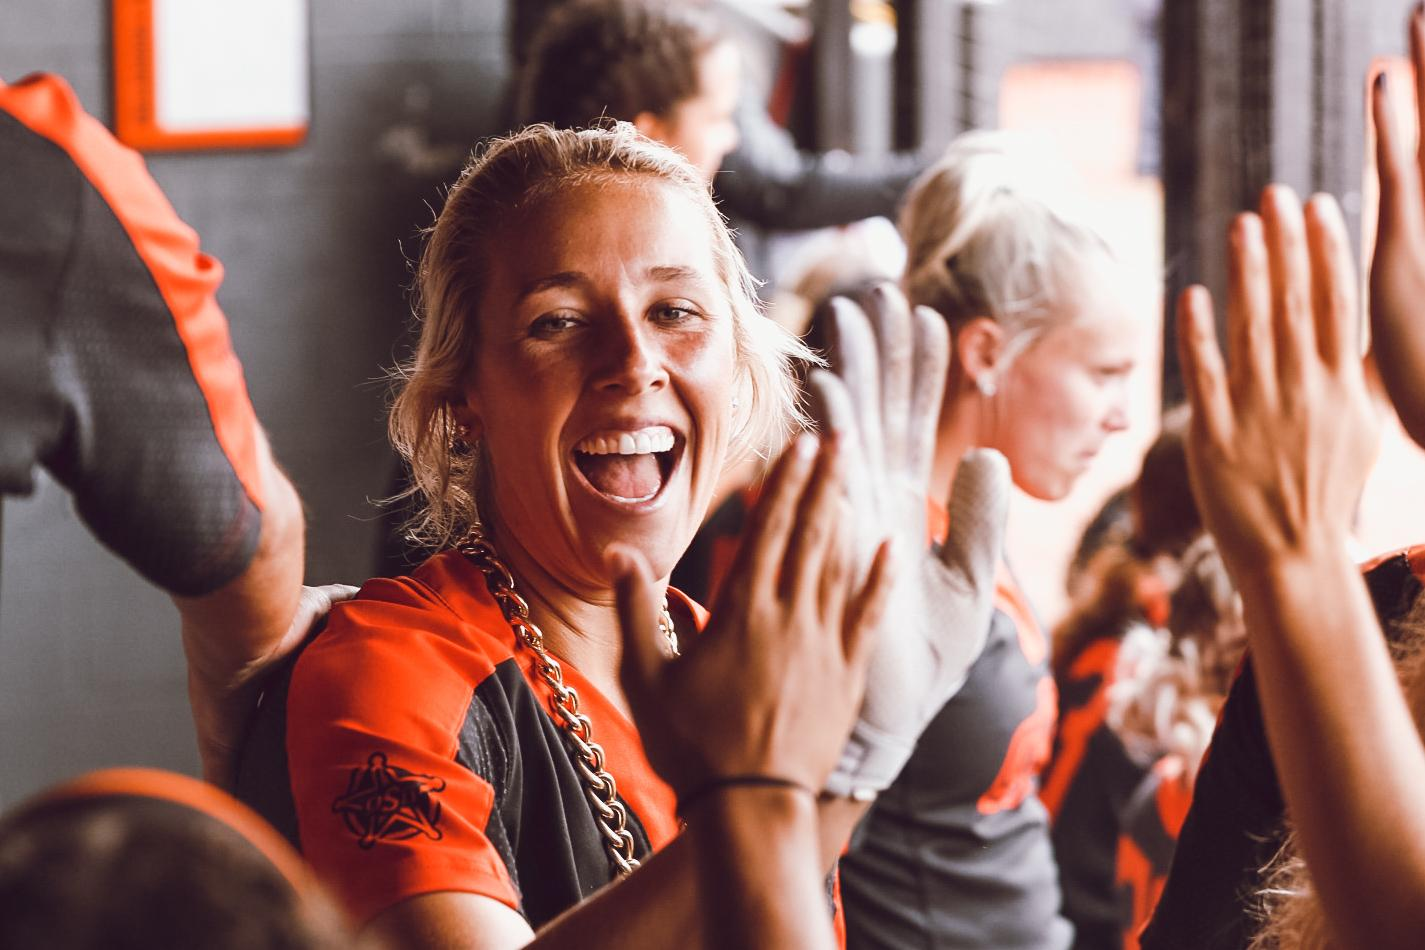 Sydney Pennington after setting the Oklahoma State career home run record in the first weekend of the NCAA softball tournament.